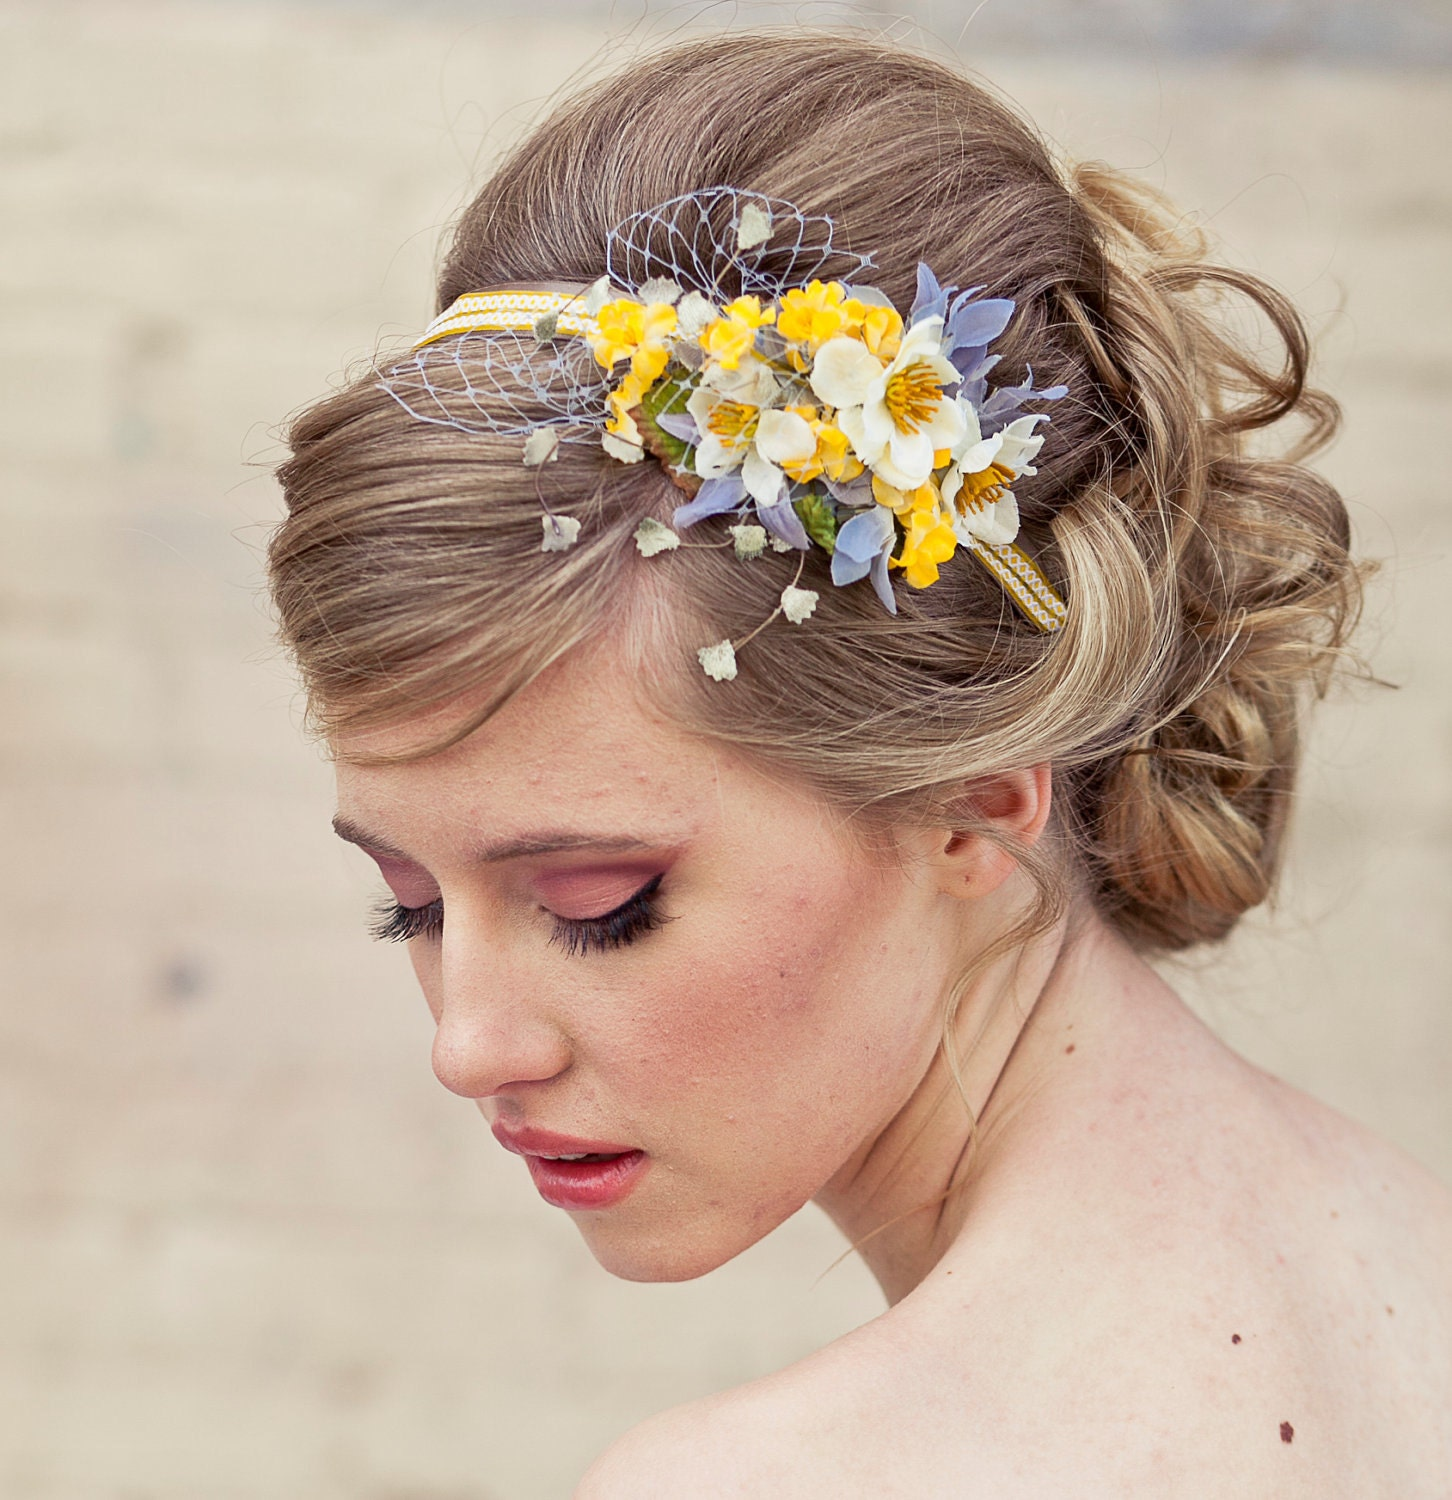 Spring flowers headband headbands for women and weddings